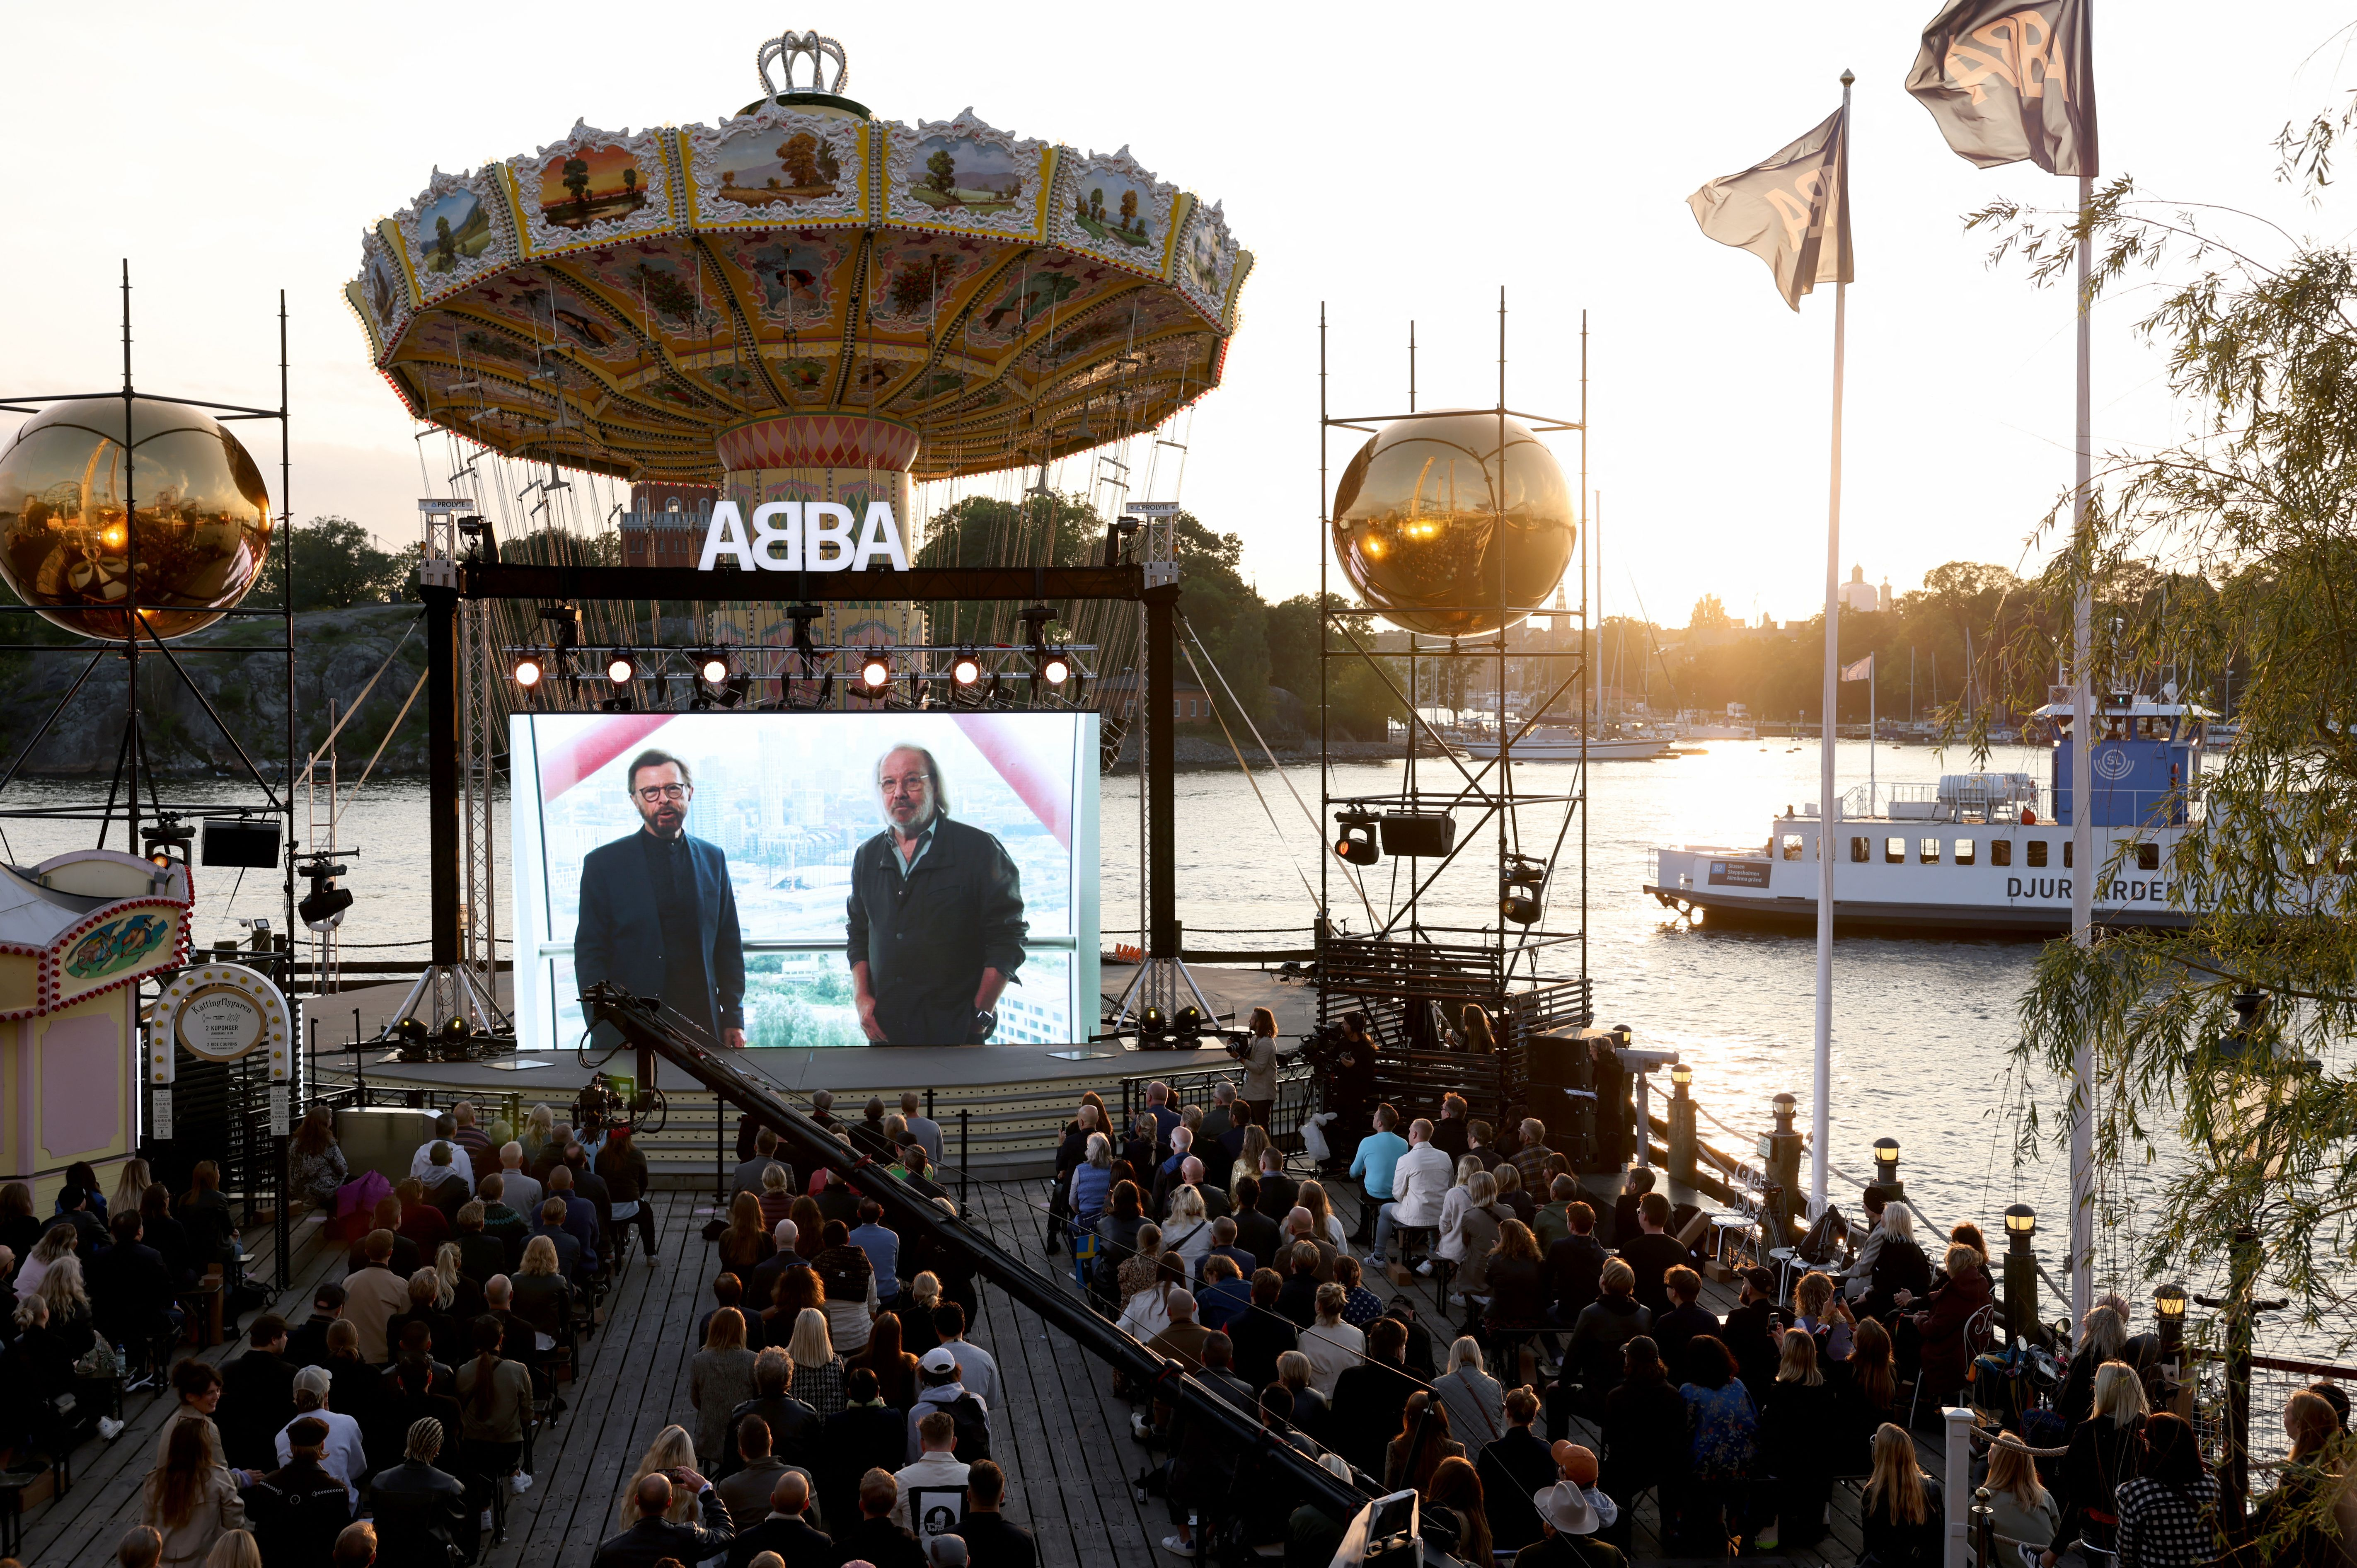 <p>Members of the Swedish group ABBA Bjoern Ulvaeus and Benny Andersson are seen live on a display from London during their Voyage event at Grona Lund, Stockholm, on September 2, 2021, during a livestreamed interview on their first album after nearly four decades. - Sweden OUT (Photo by Fredrik PERSSON / TT News Agency / AFP) / Sweden OUT (Photo by FREDRIK PERSSON/TT News Agency/AFP via Getty Images)</p>